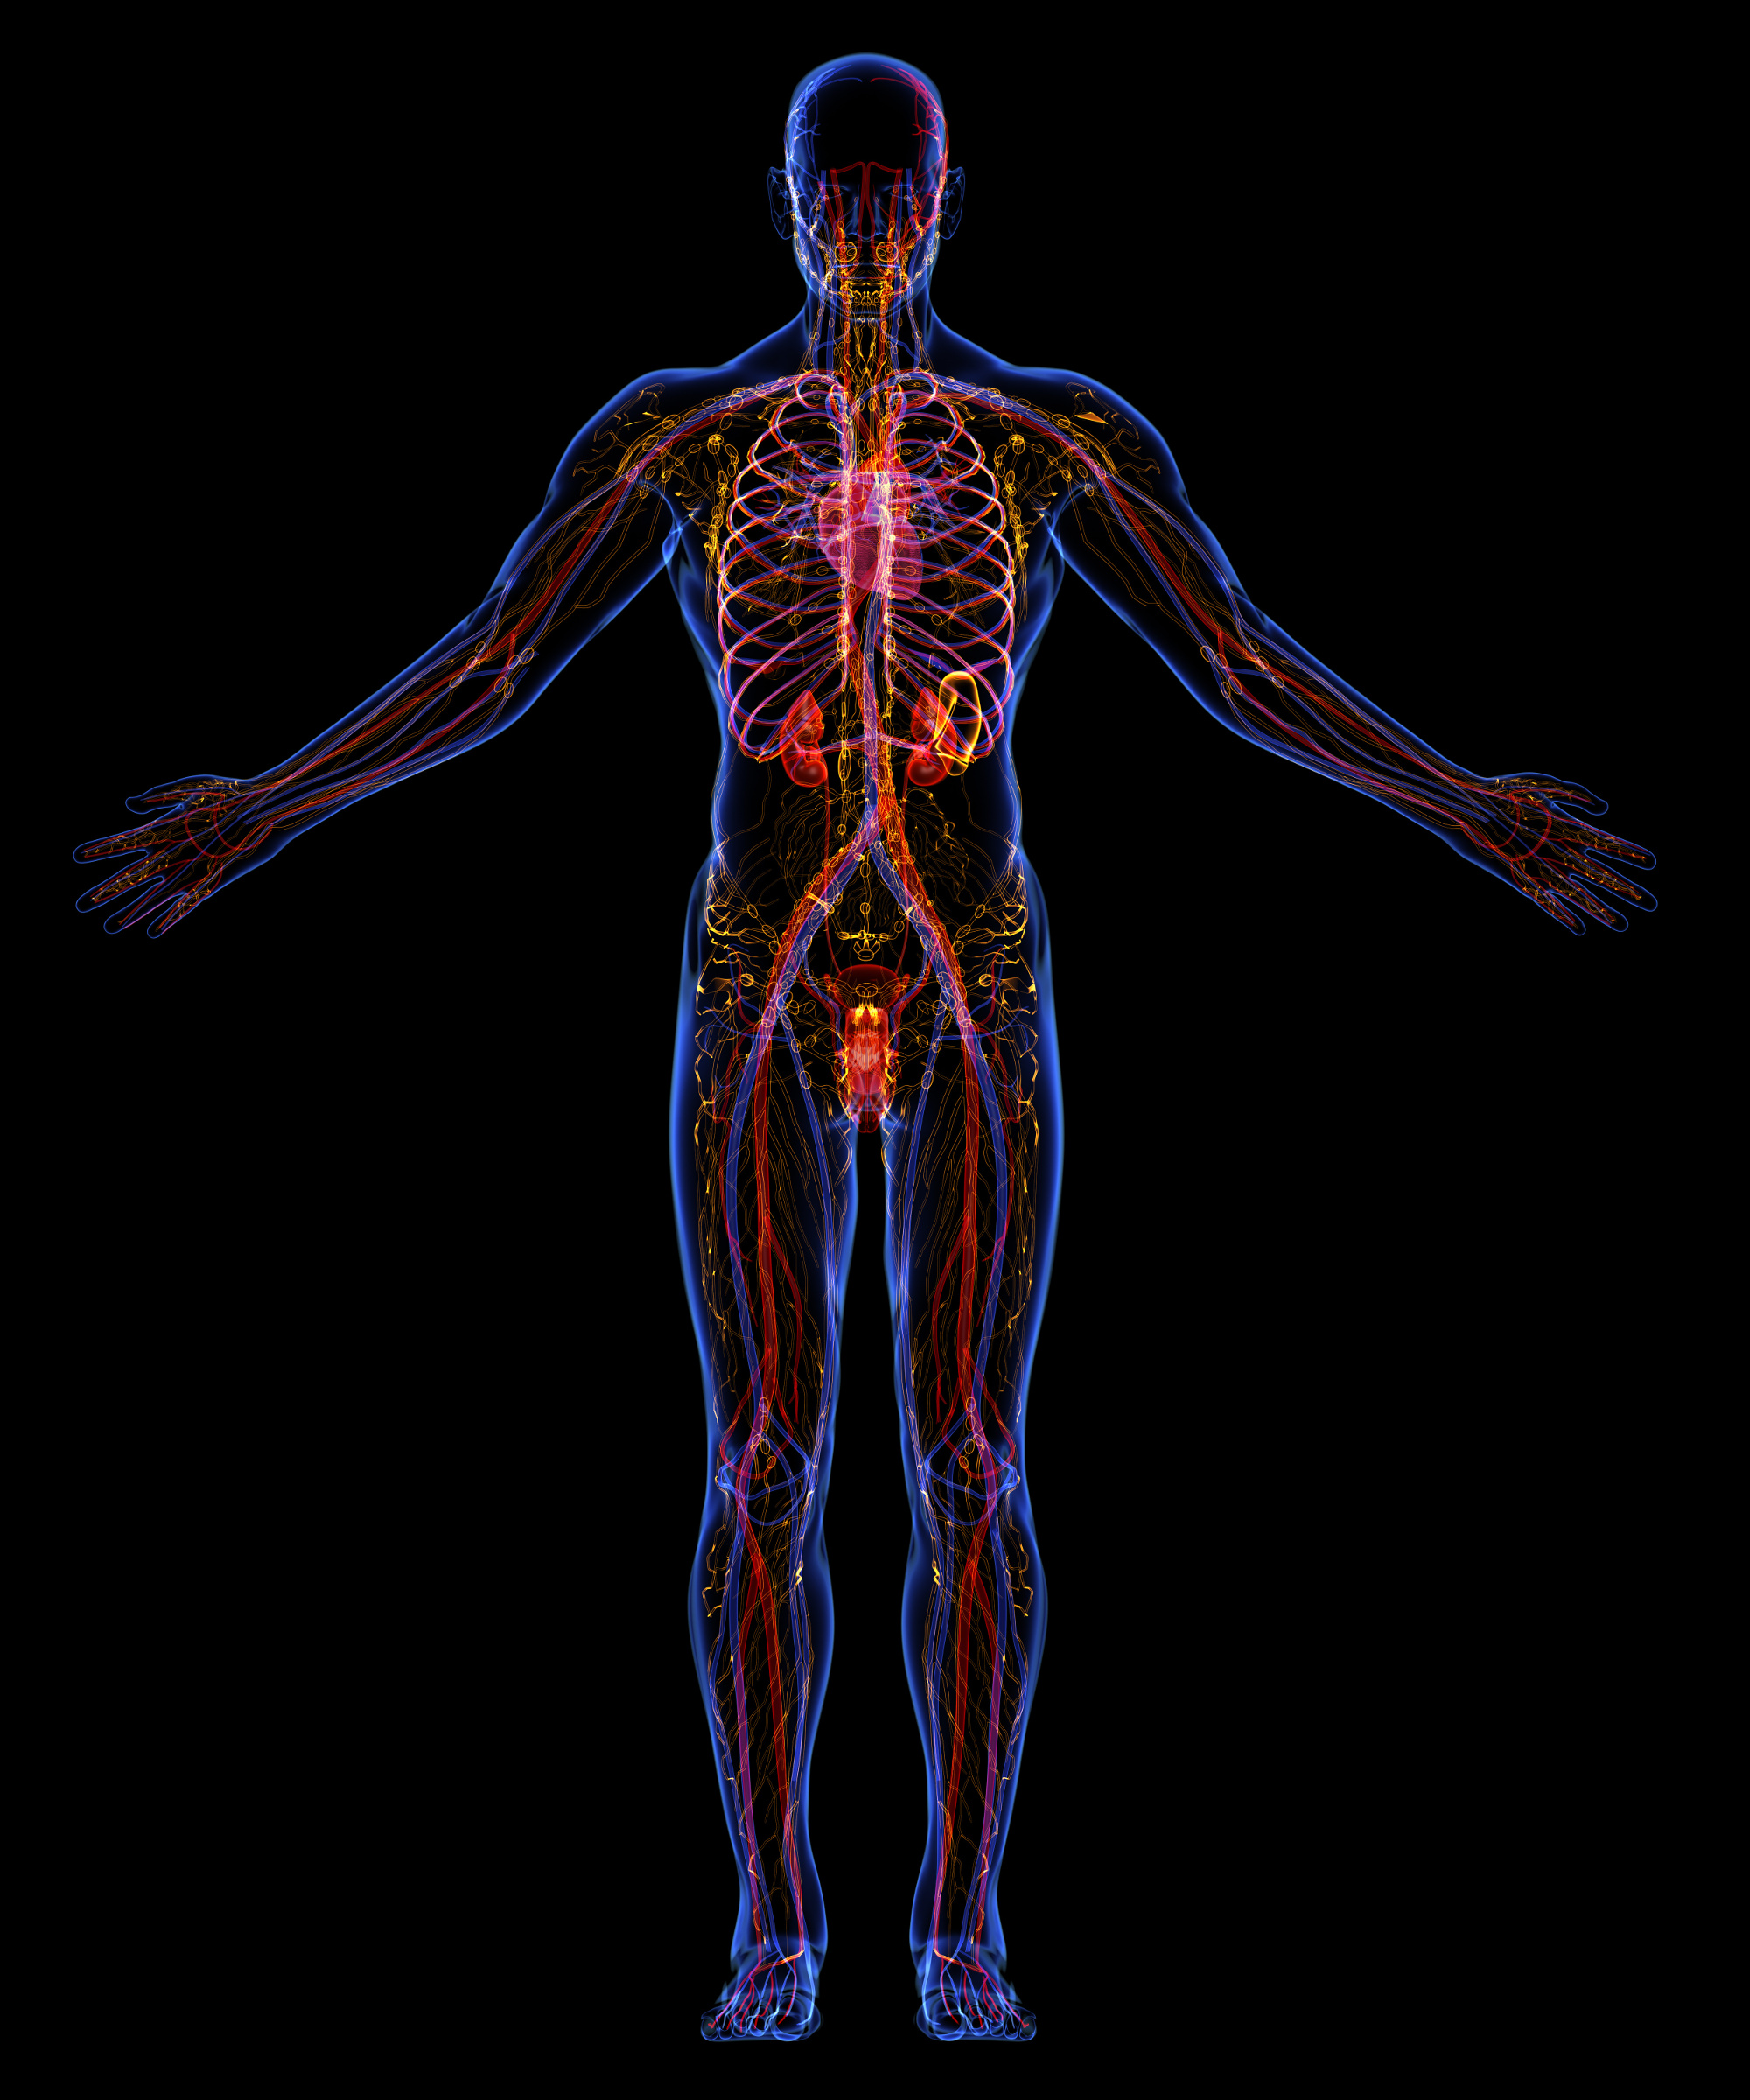 How to Keep your Lymphatic System Going